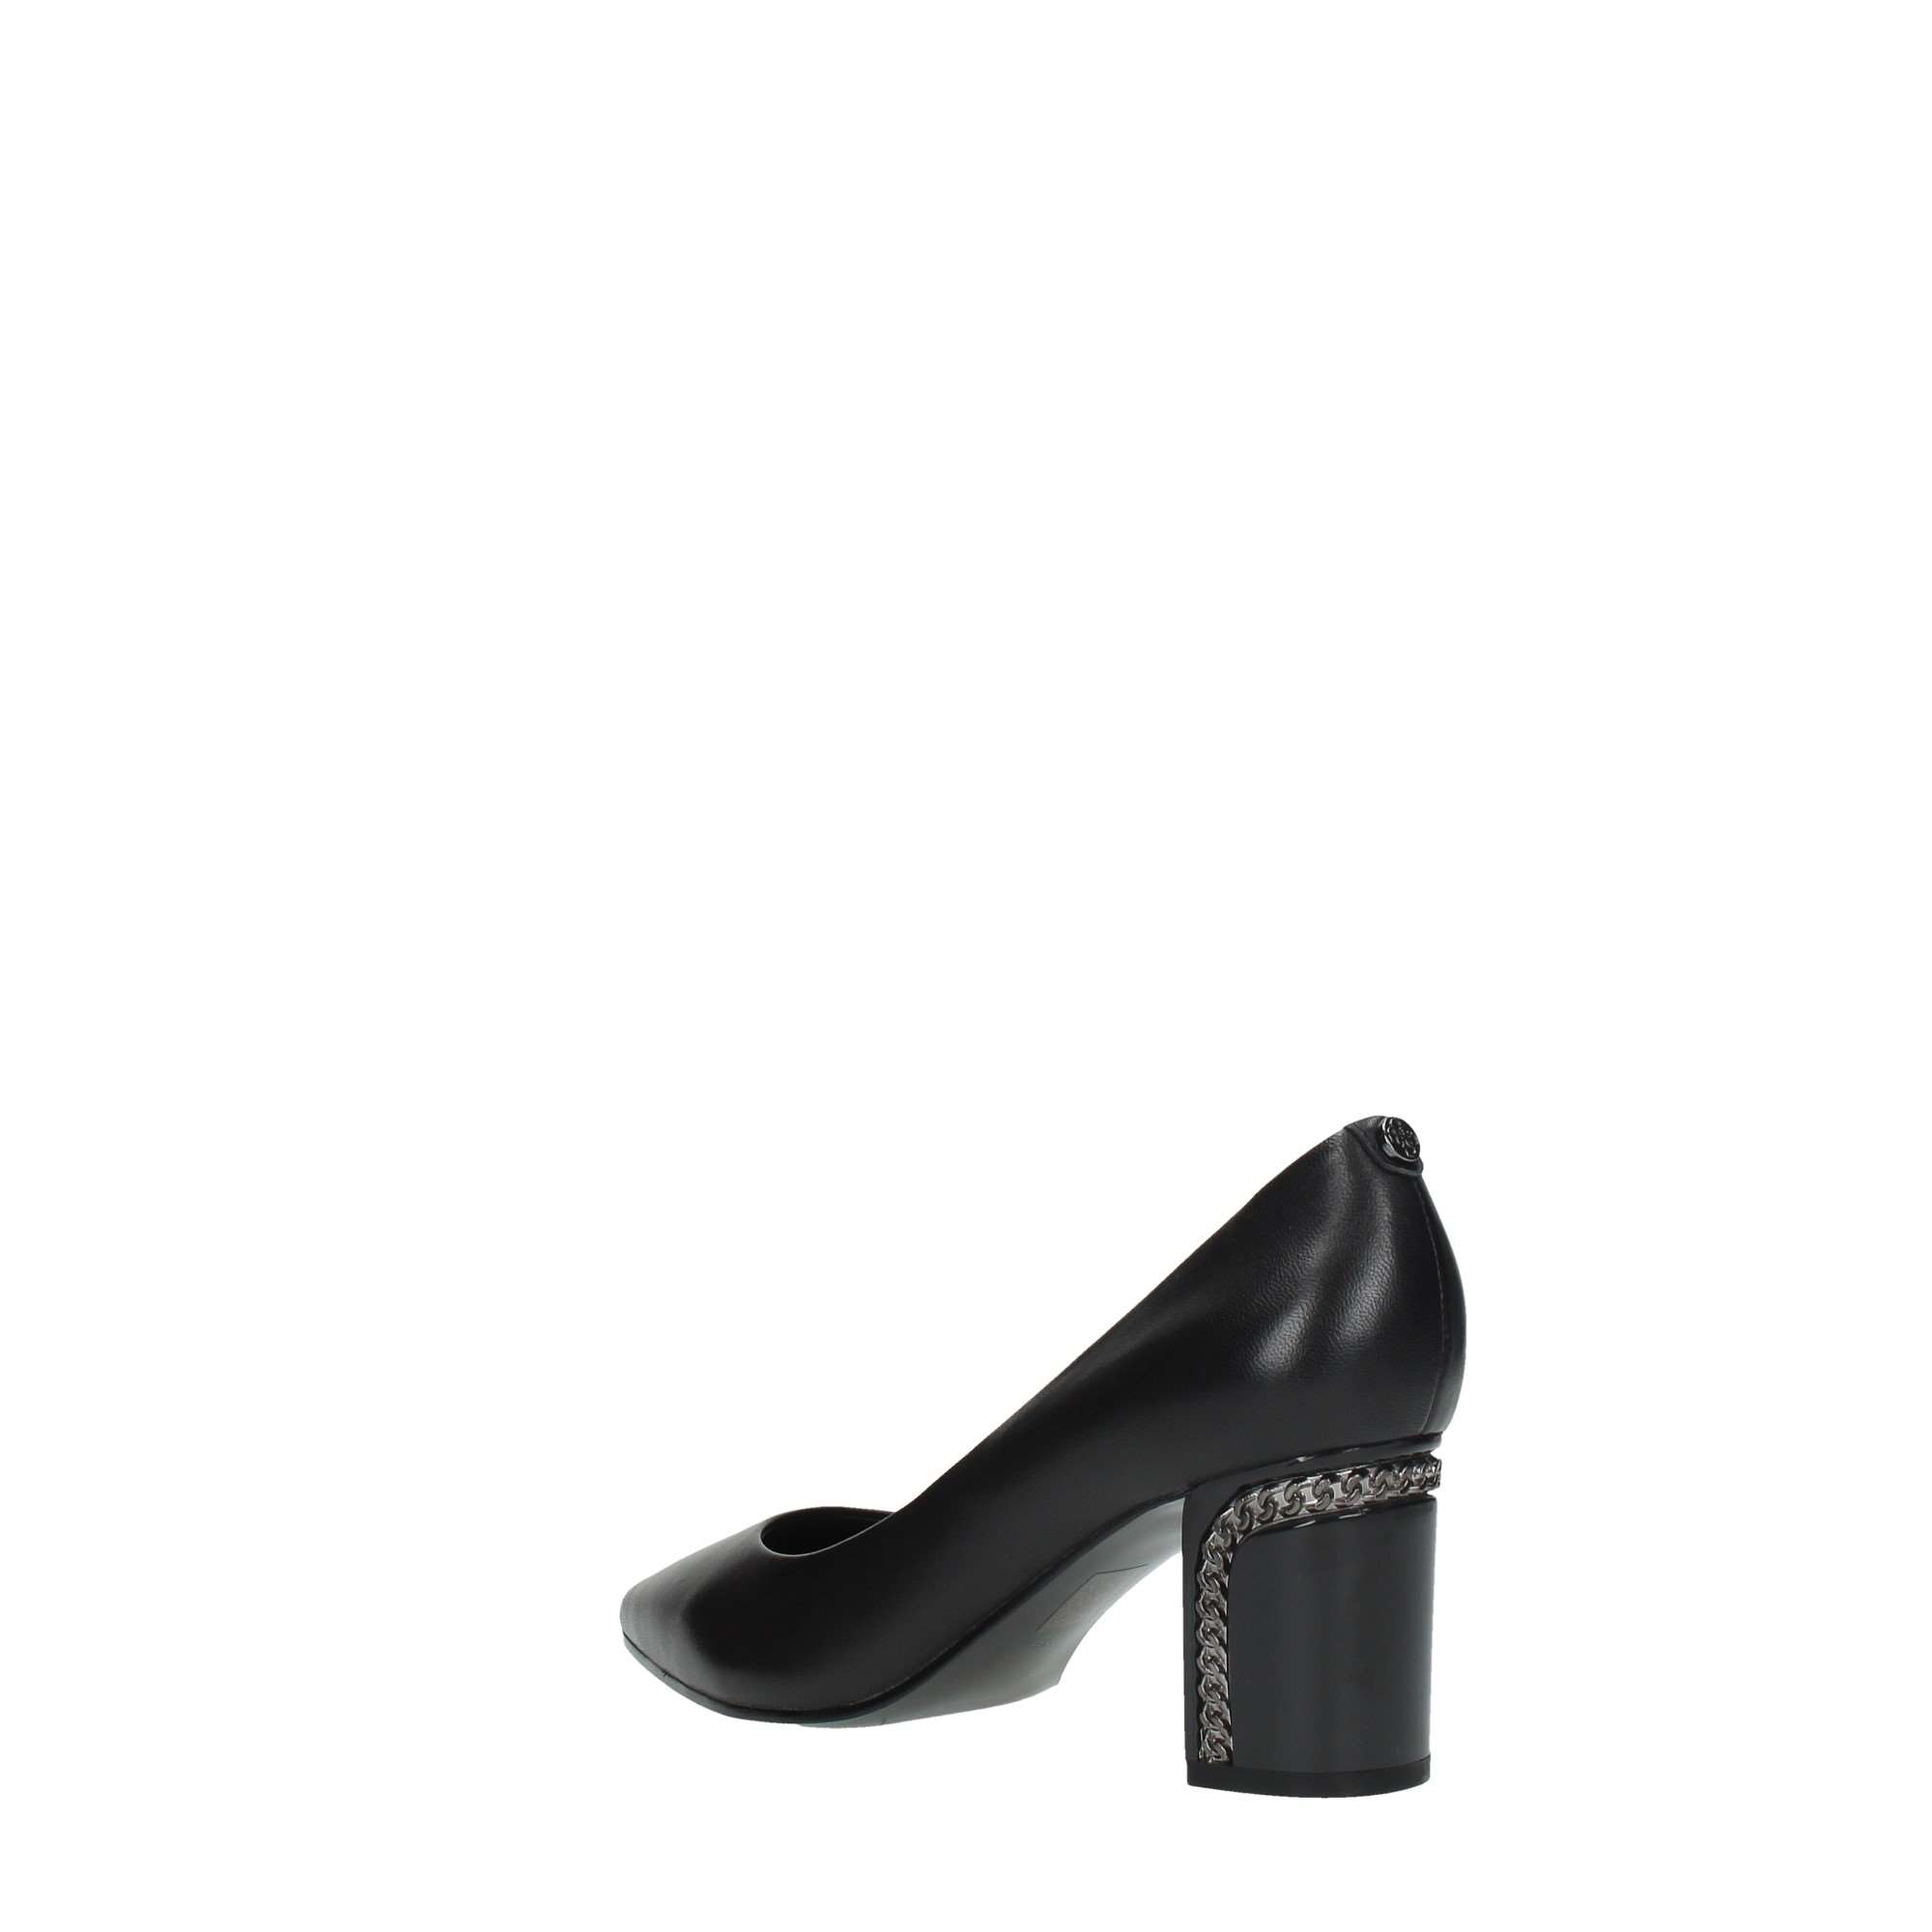 Guess Shoes Women Cleavage And Heeled Shoes Black FL7BRE